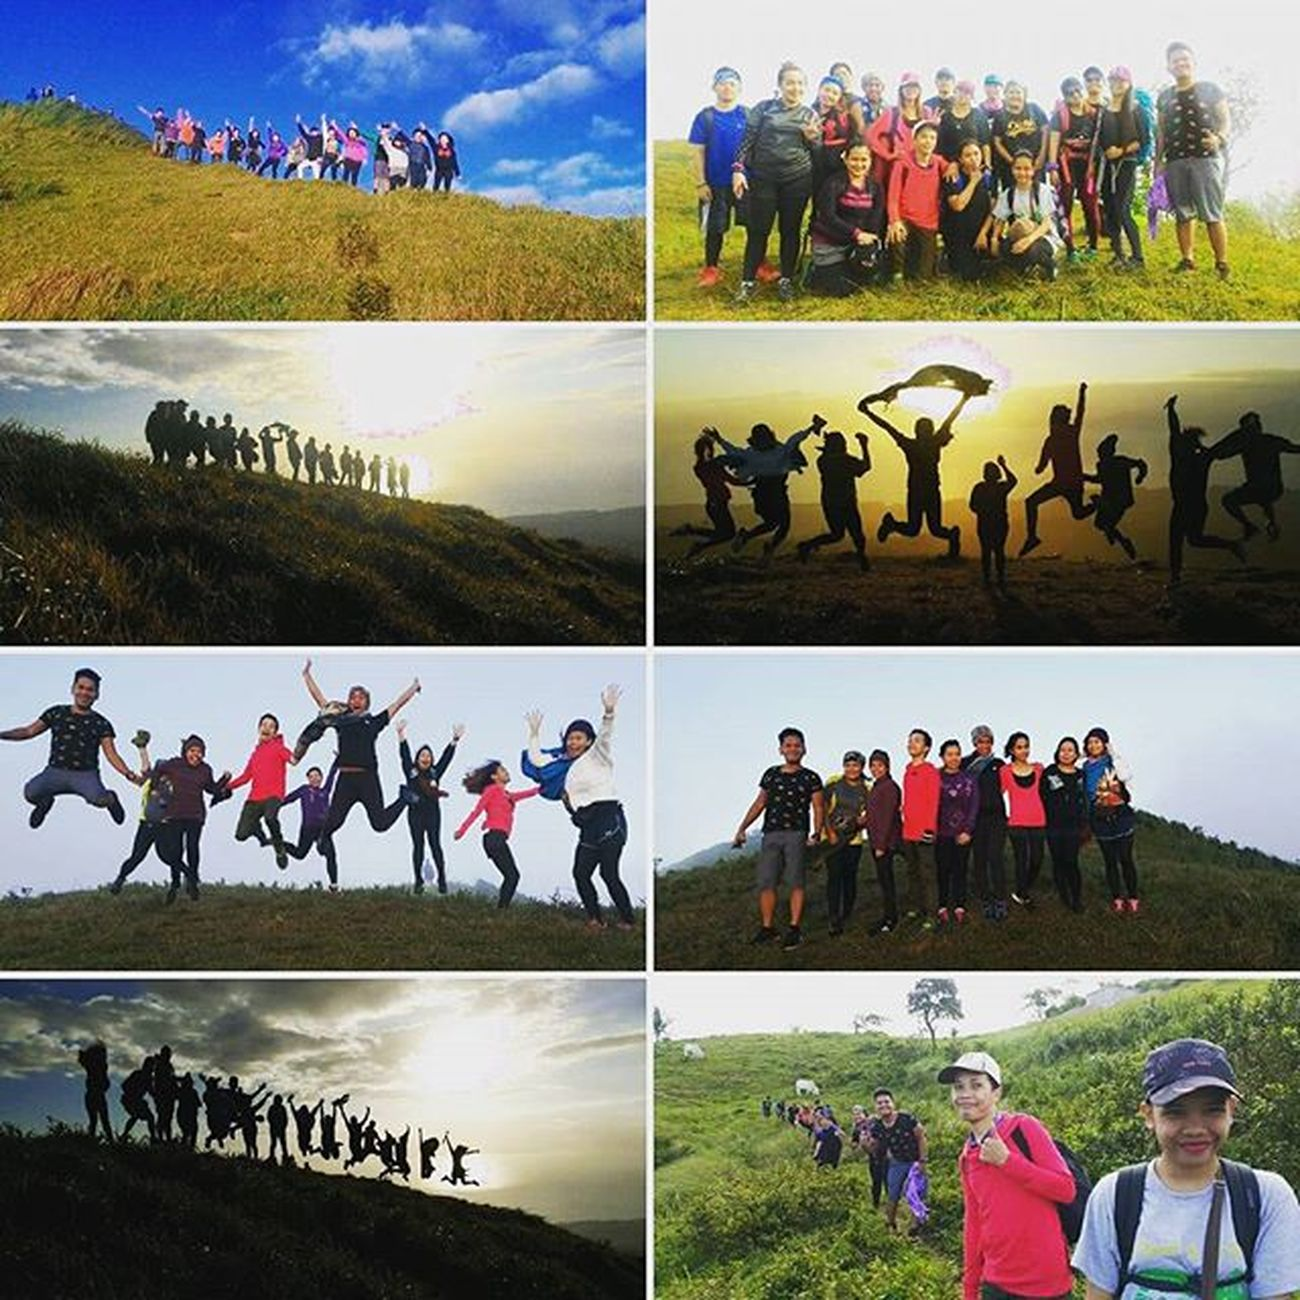 FRIENDS who climb mountains together, STAY together. Juanderful Juanderer Juanderlust Choosephilippines Itsmorefuninthephilippines Travelph Wowphilippines Teamderechopa Climbwithattitude Hikewithattitude Trekwithattitude FRIENDSHIPGOALS